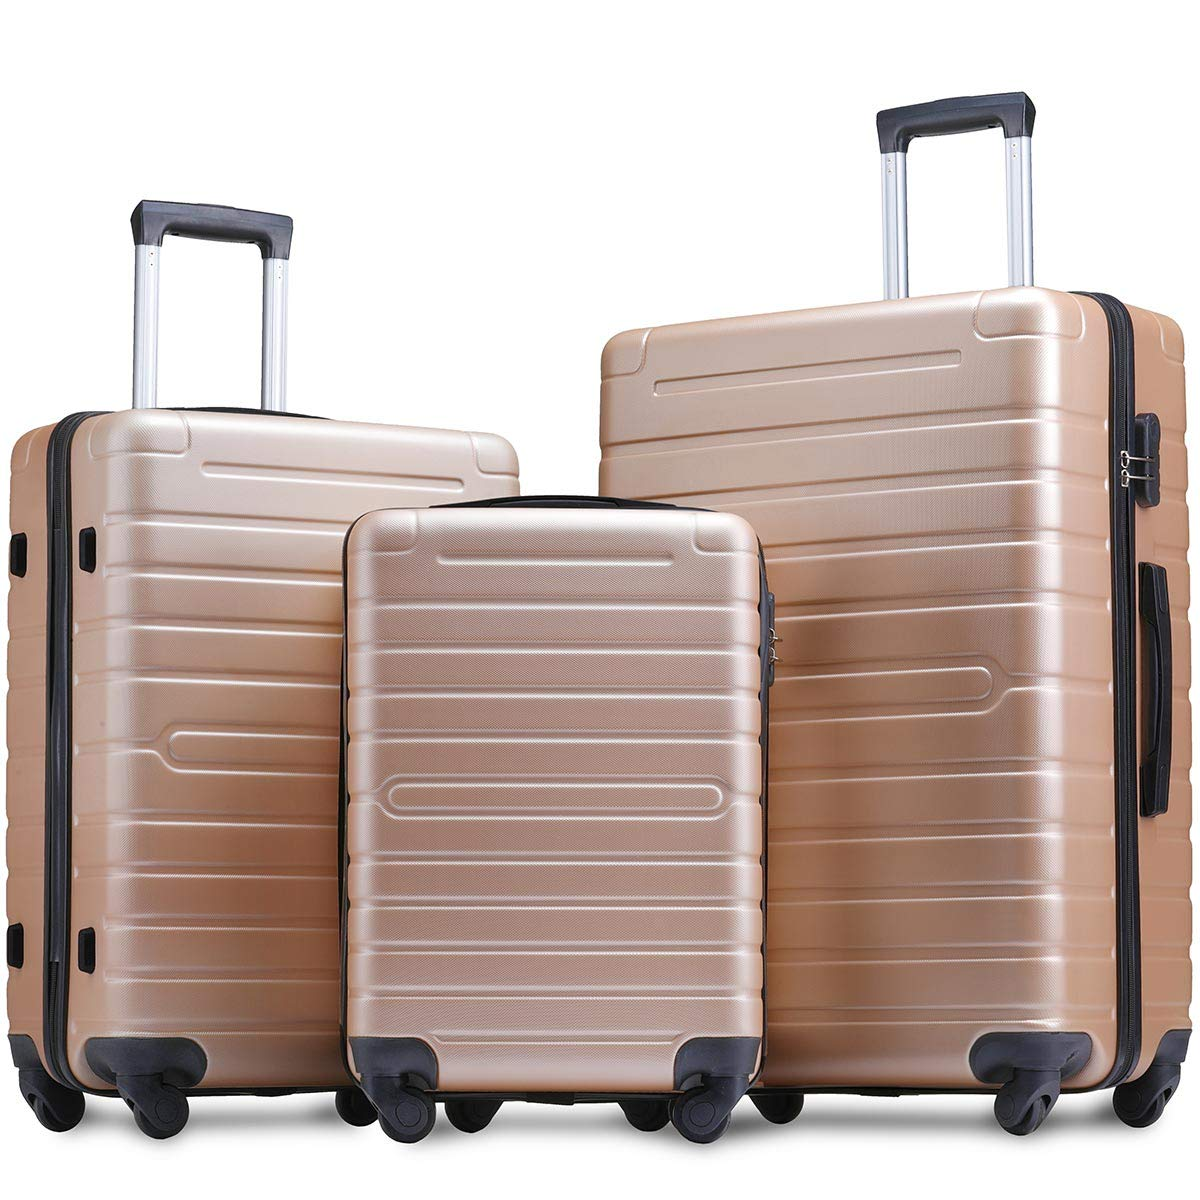 Merax Spinner Luggage Set, 3-Piece